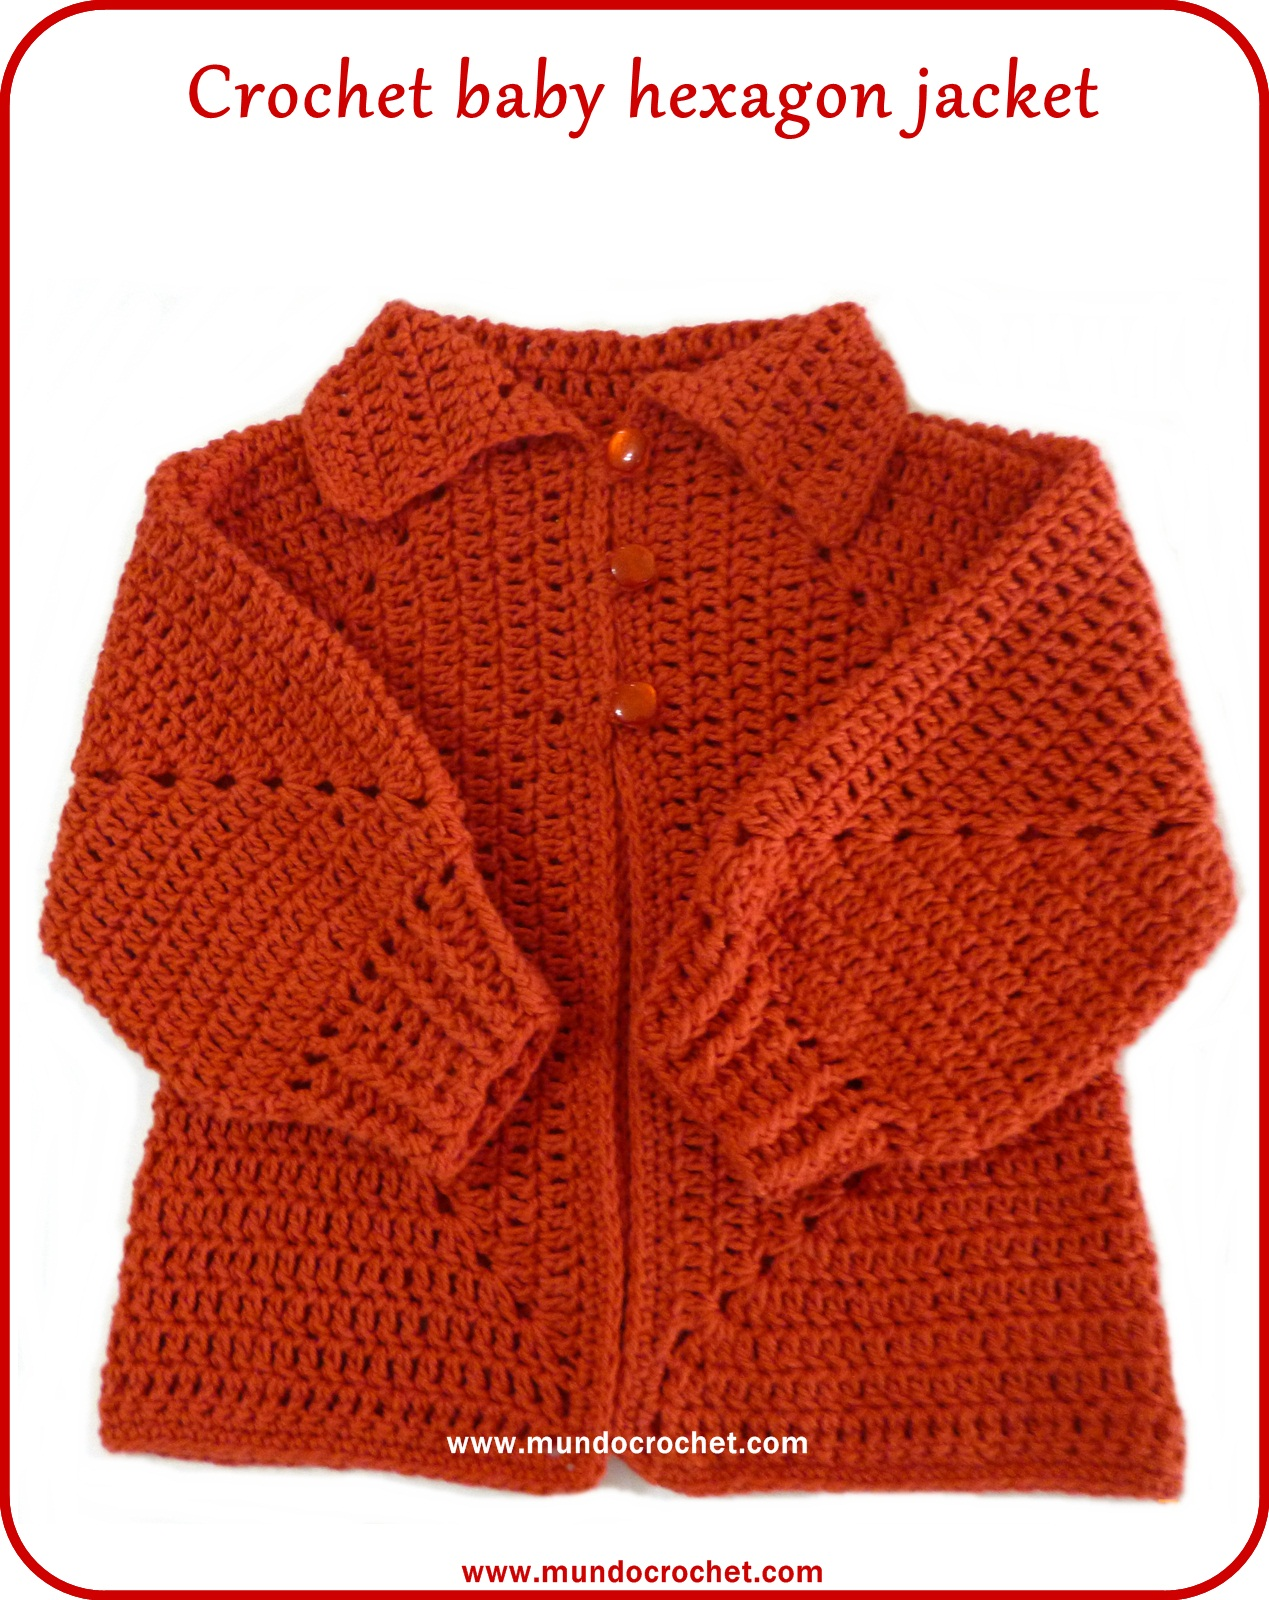 a371f7e55 In this new post I want to bring you another version of the baby hexagon  jacket. This version has no holes